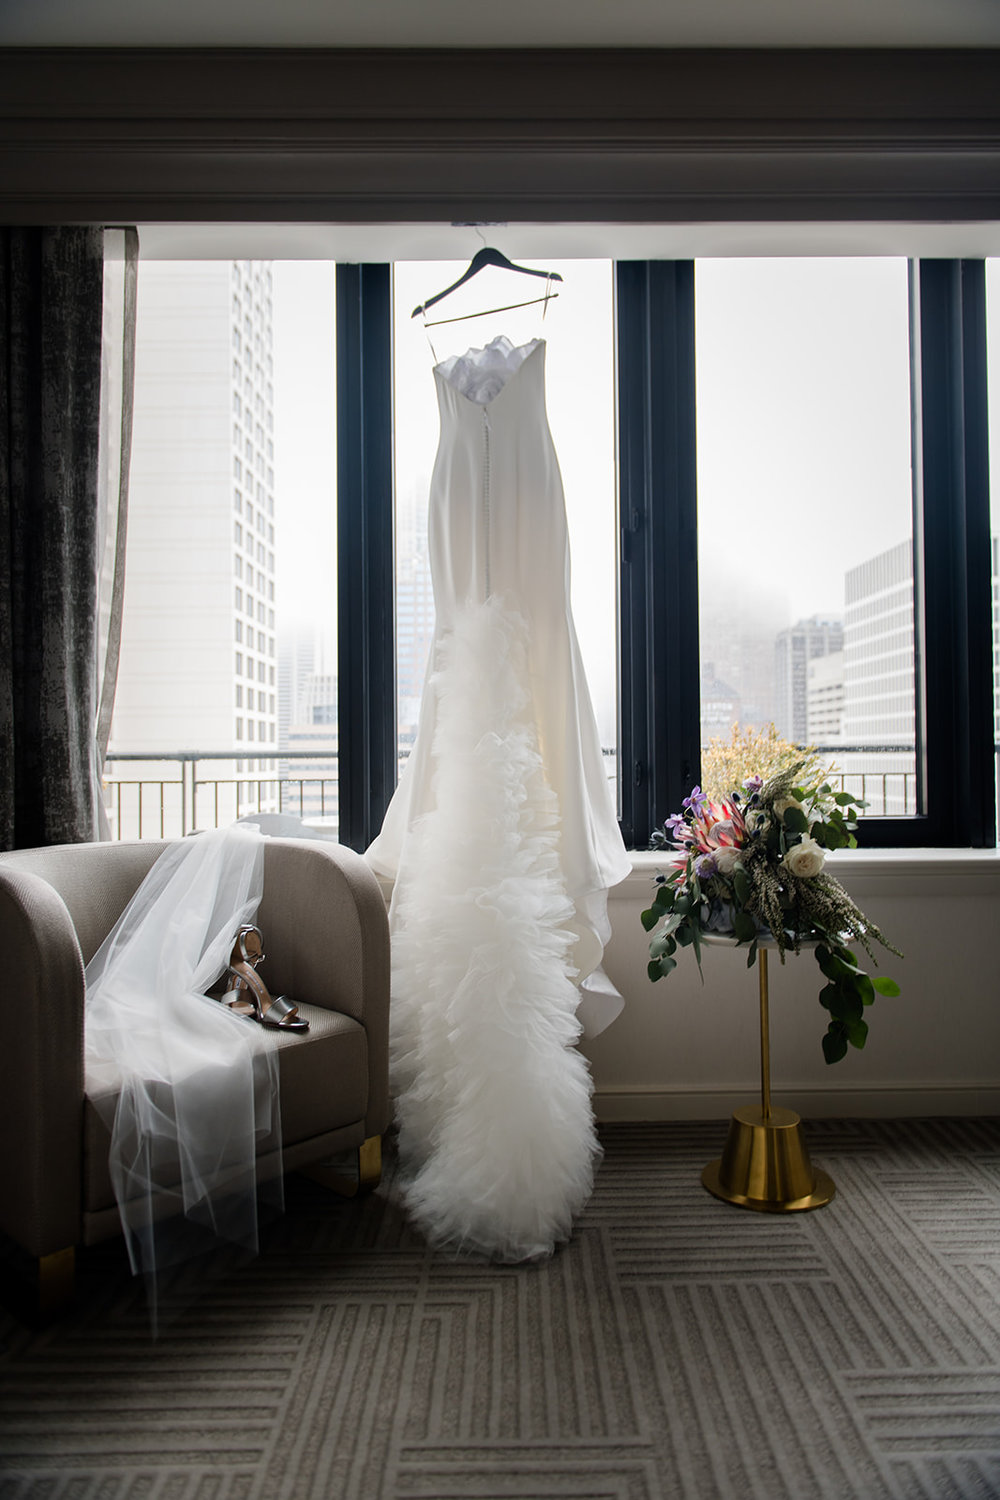 Bride's accessories and gown displayed at the Gwen Hotel in Chicago, Illinois